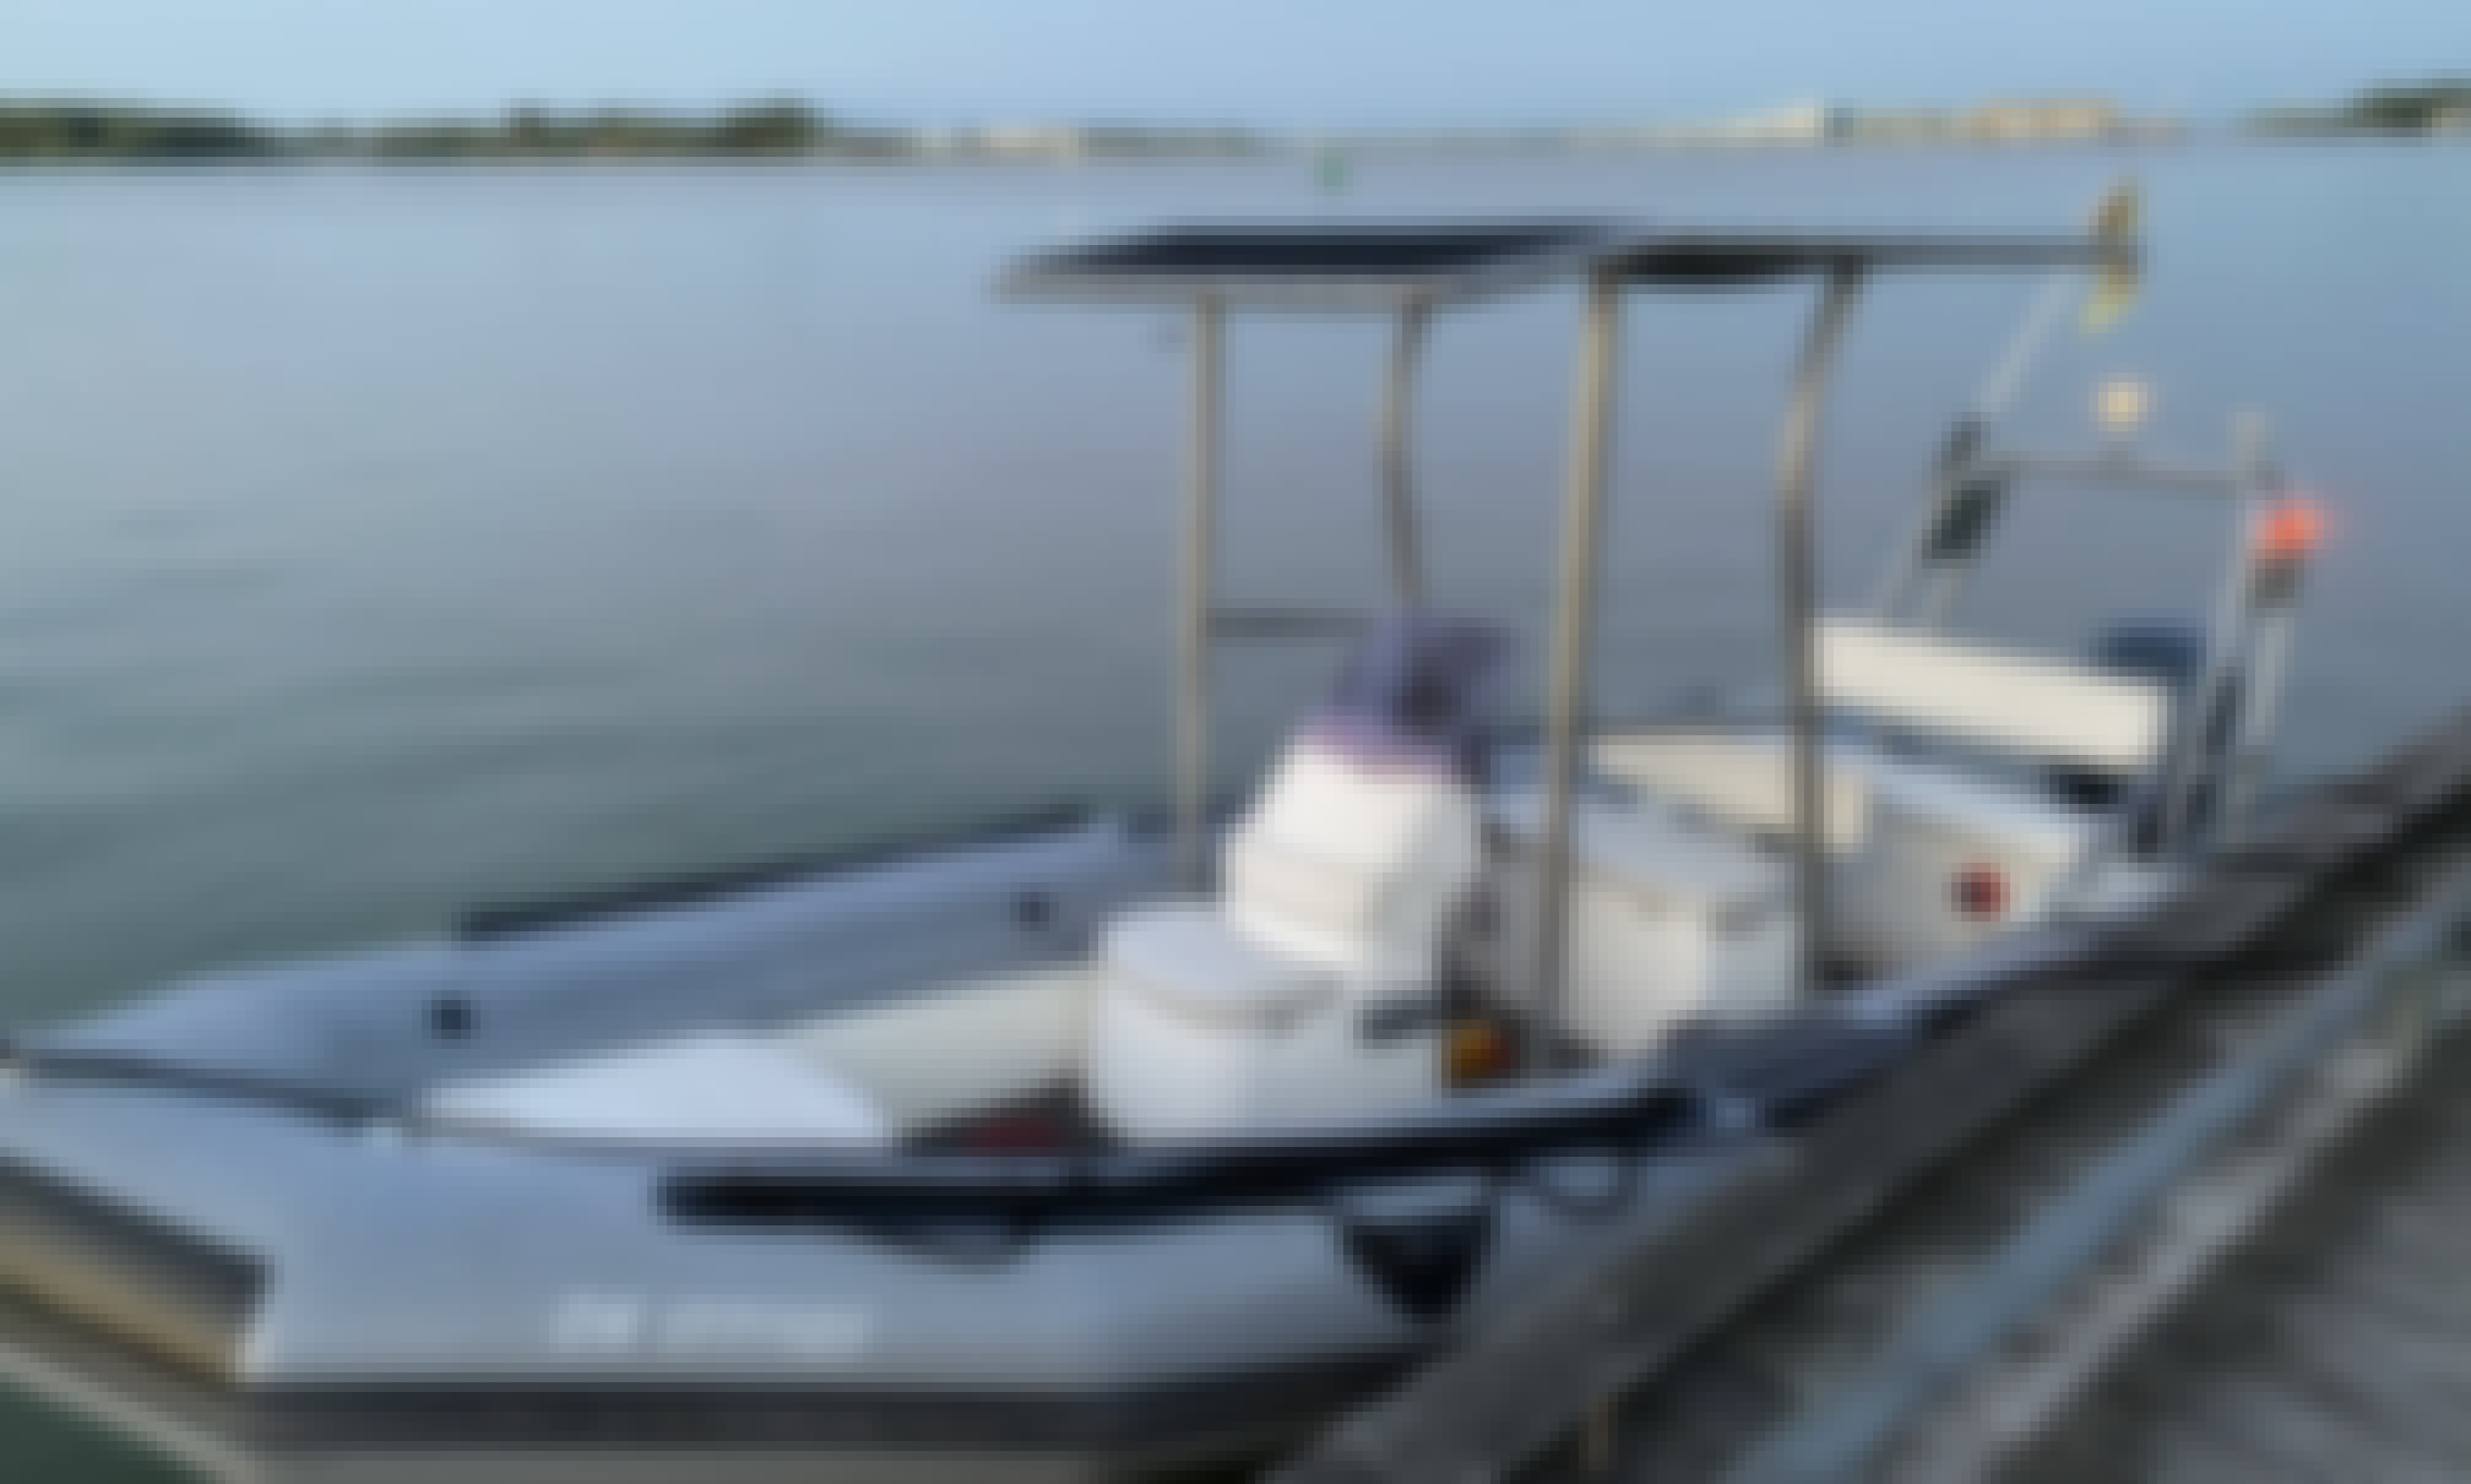 22' Zodiac Inflatable Boat for up to 5 people in Toronto, Ontario!